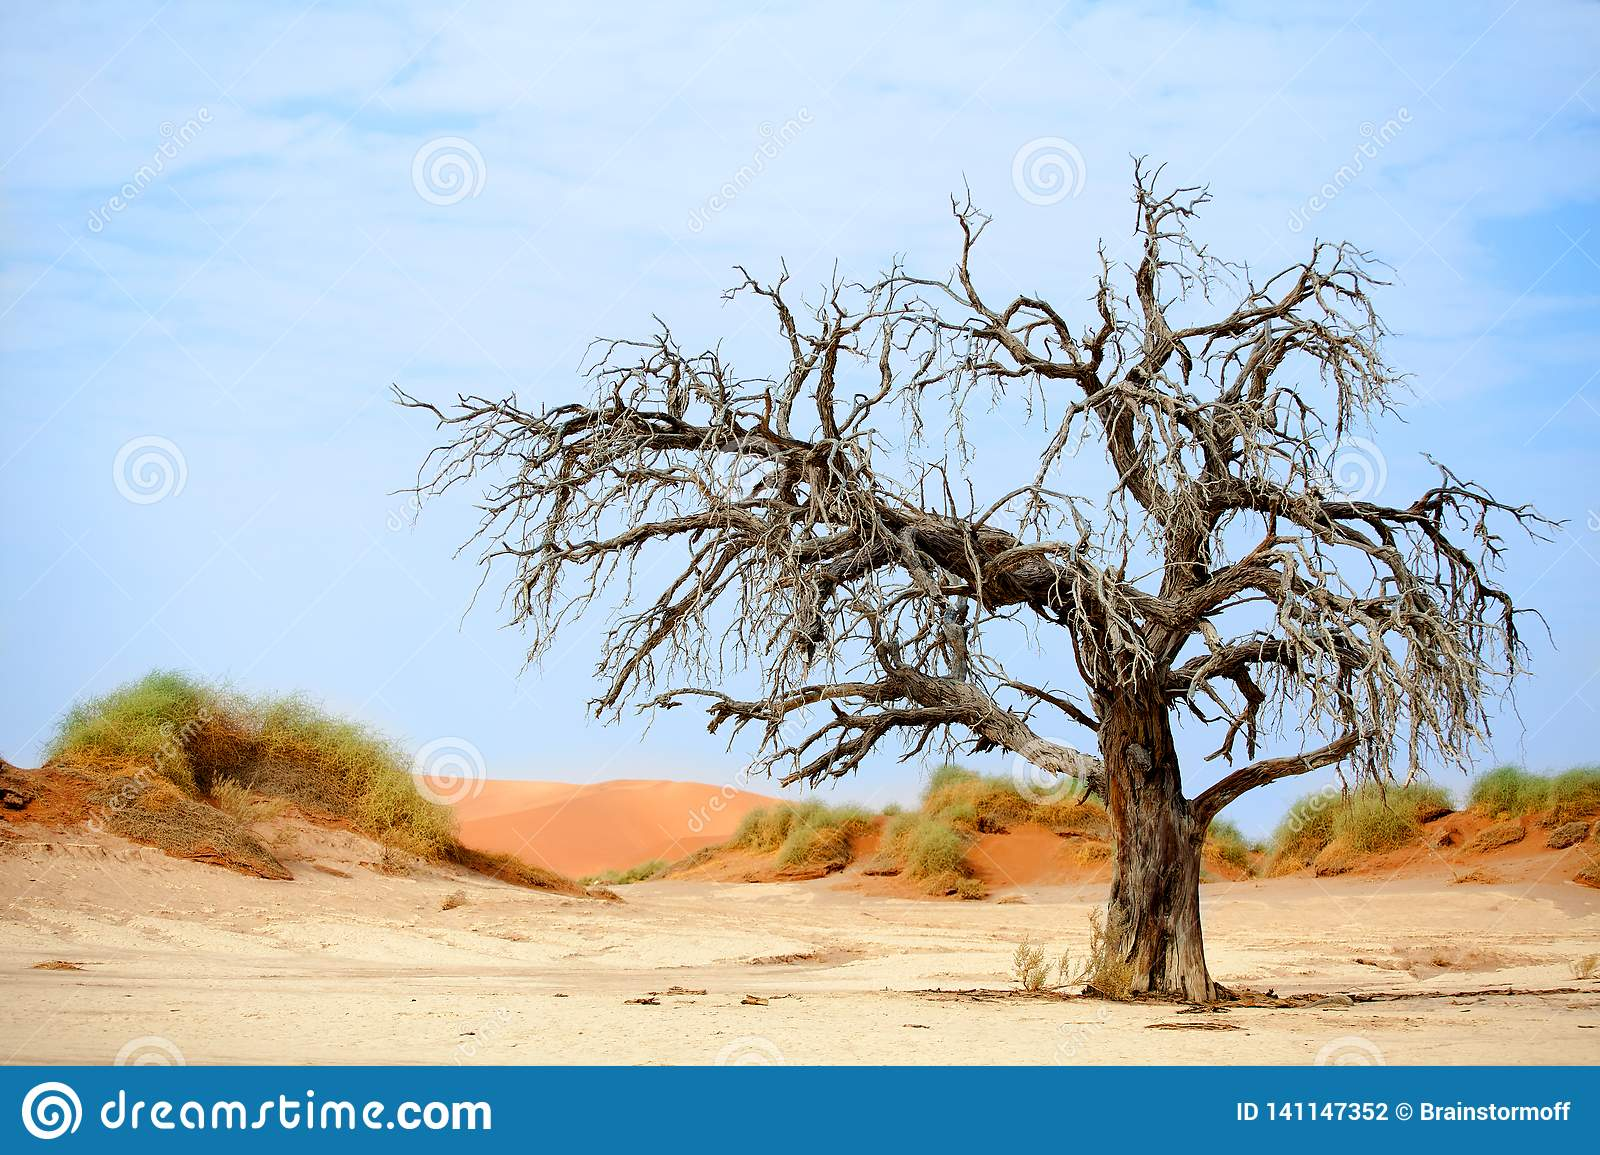 Dried camel acacia tree on orange sand dunes and bright blue sky background, Namibia, Southern Africa